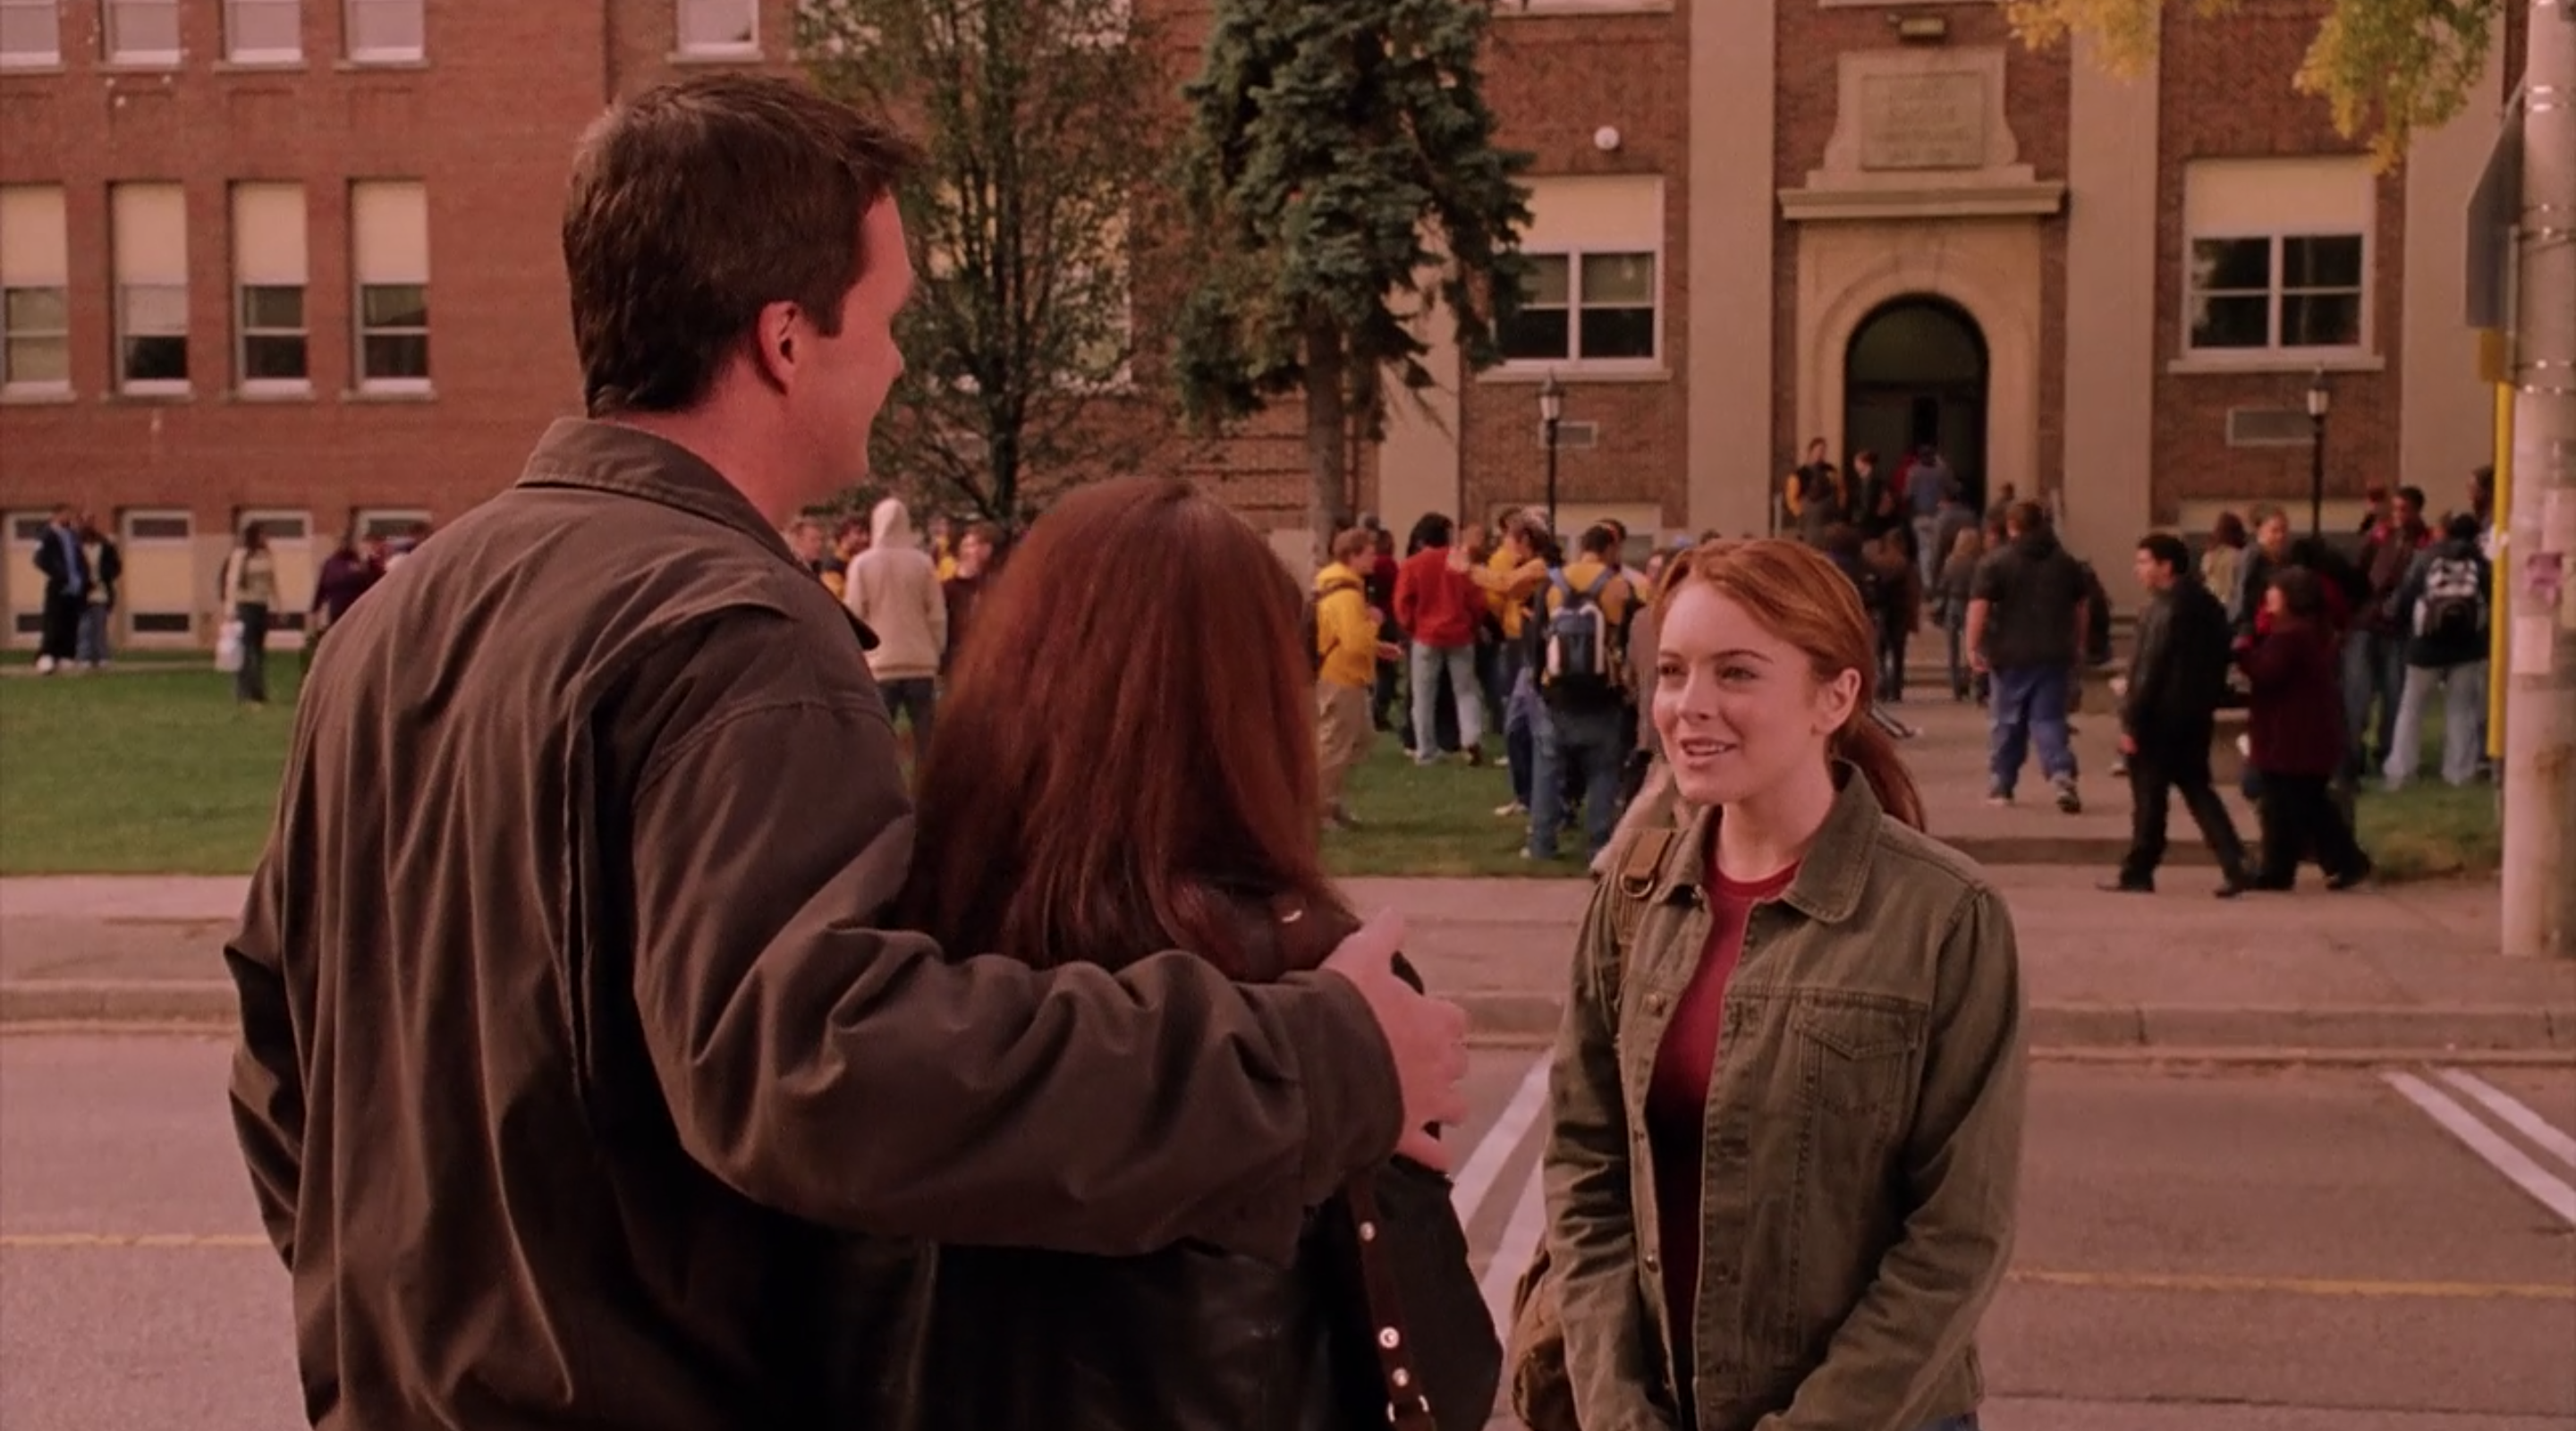 Cady's arrives for her first day of school.